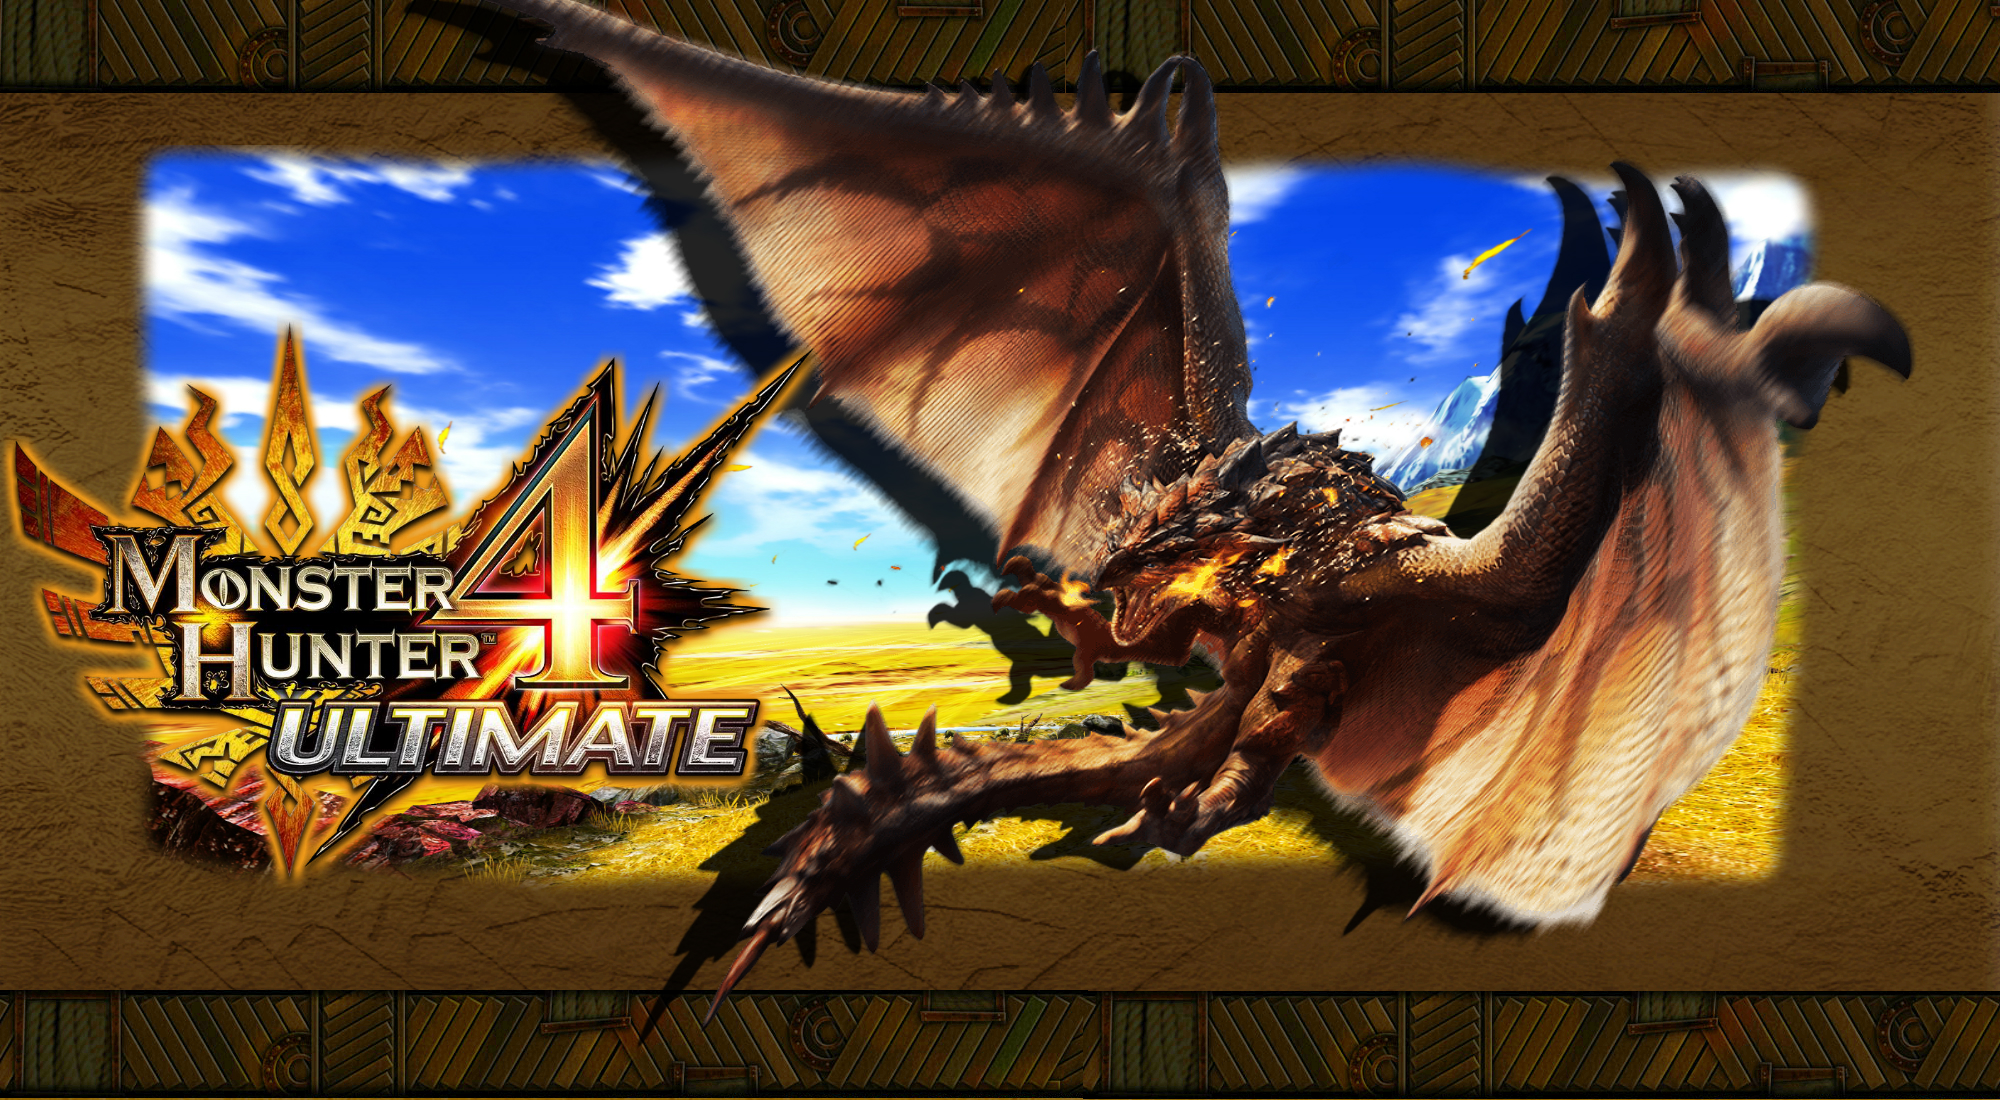 Monster Hunter 4 Ultimate Wallpaper Wallpapersafari